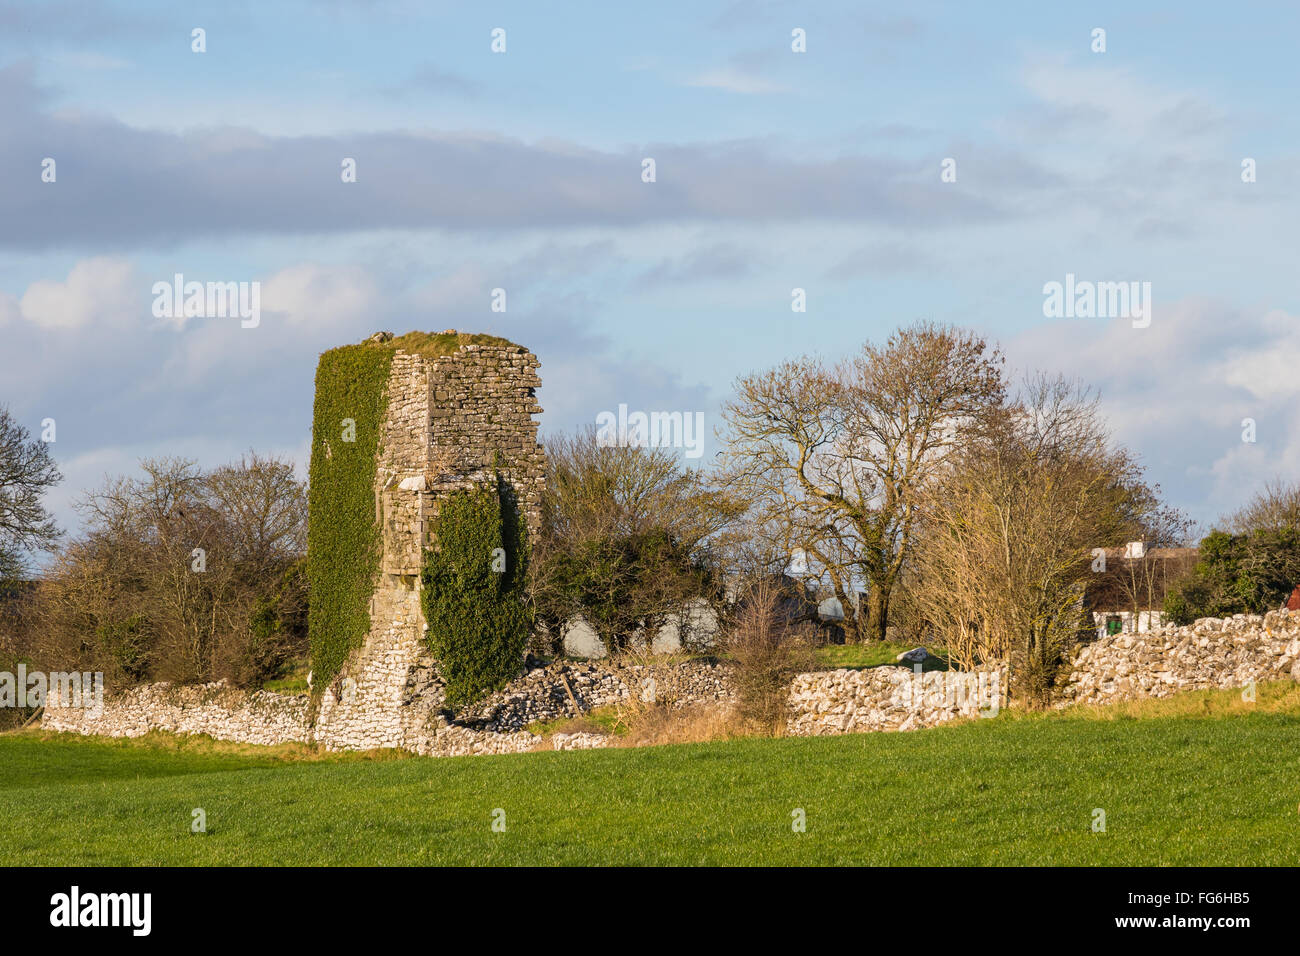 The ruins of Cloughanover Castle are about 2 miles from the village of Headford near the Galway/Mayo border in Ireland. - Stock Image